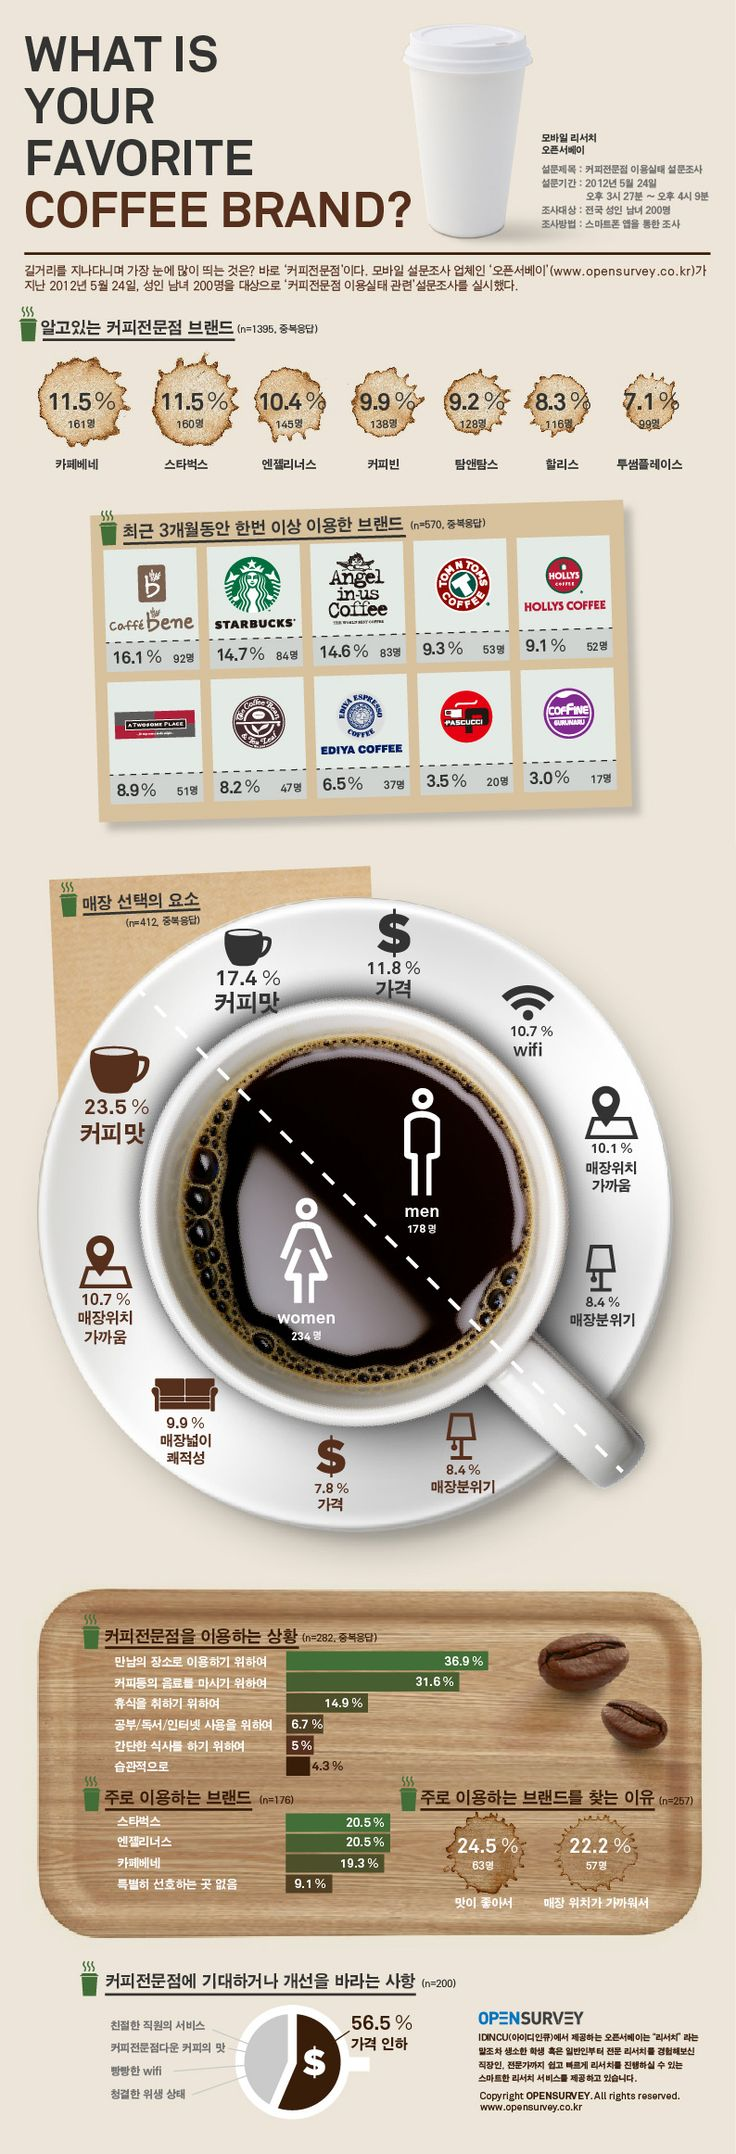 커피 브랜드 인포그래픽 What Is Your Favorite Coffee Brand? #infografía